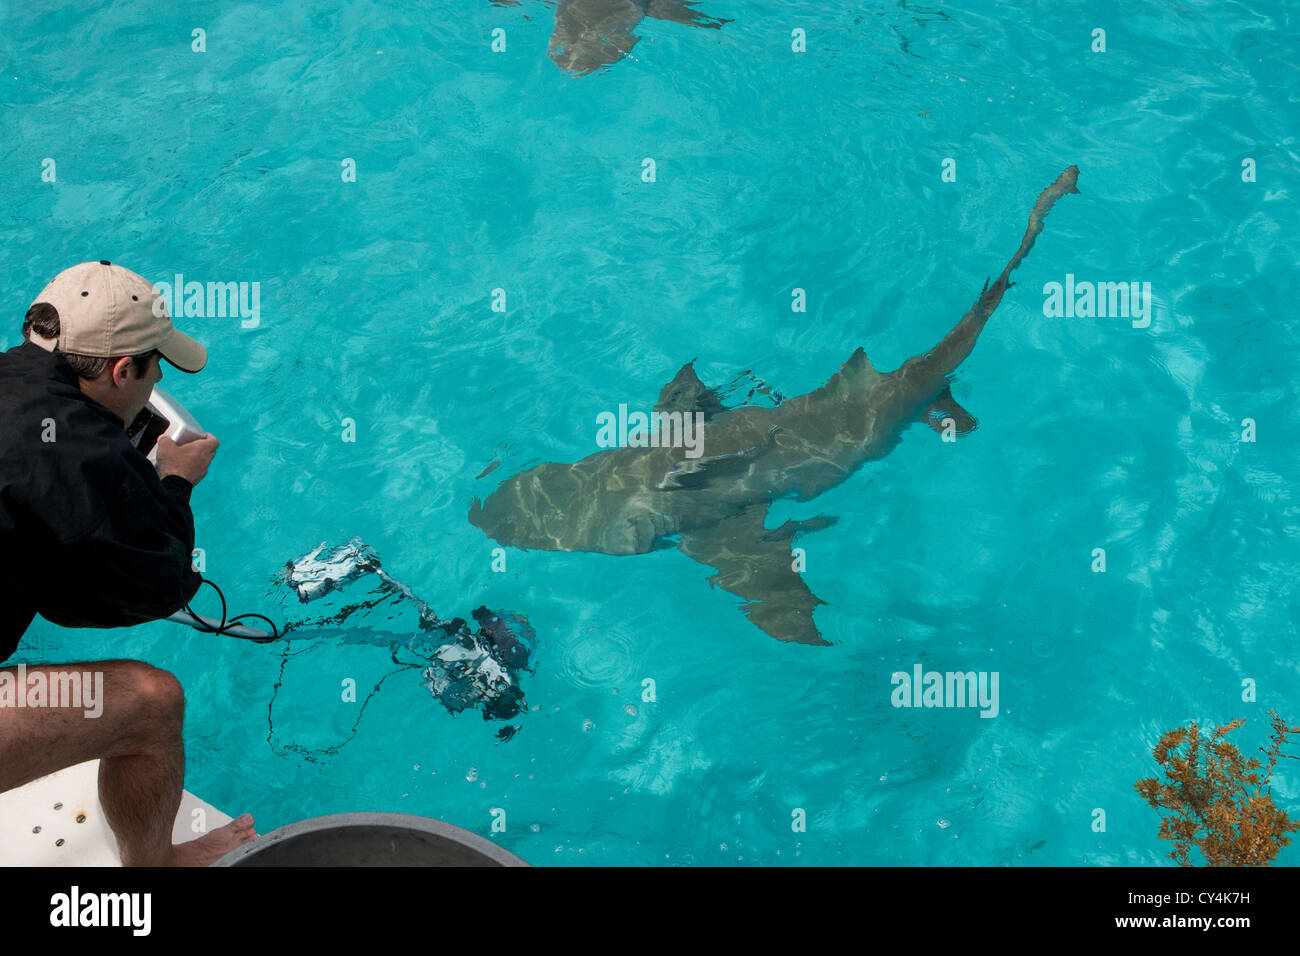 Photographer uses polecam to capture images of sharks - Stock Image